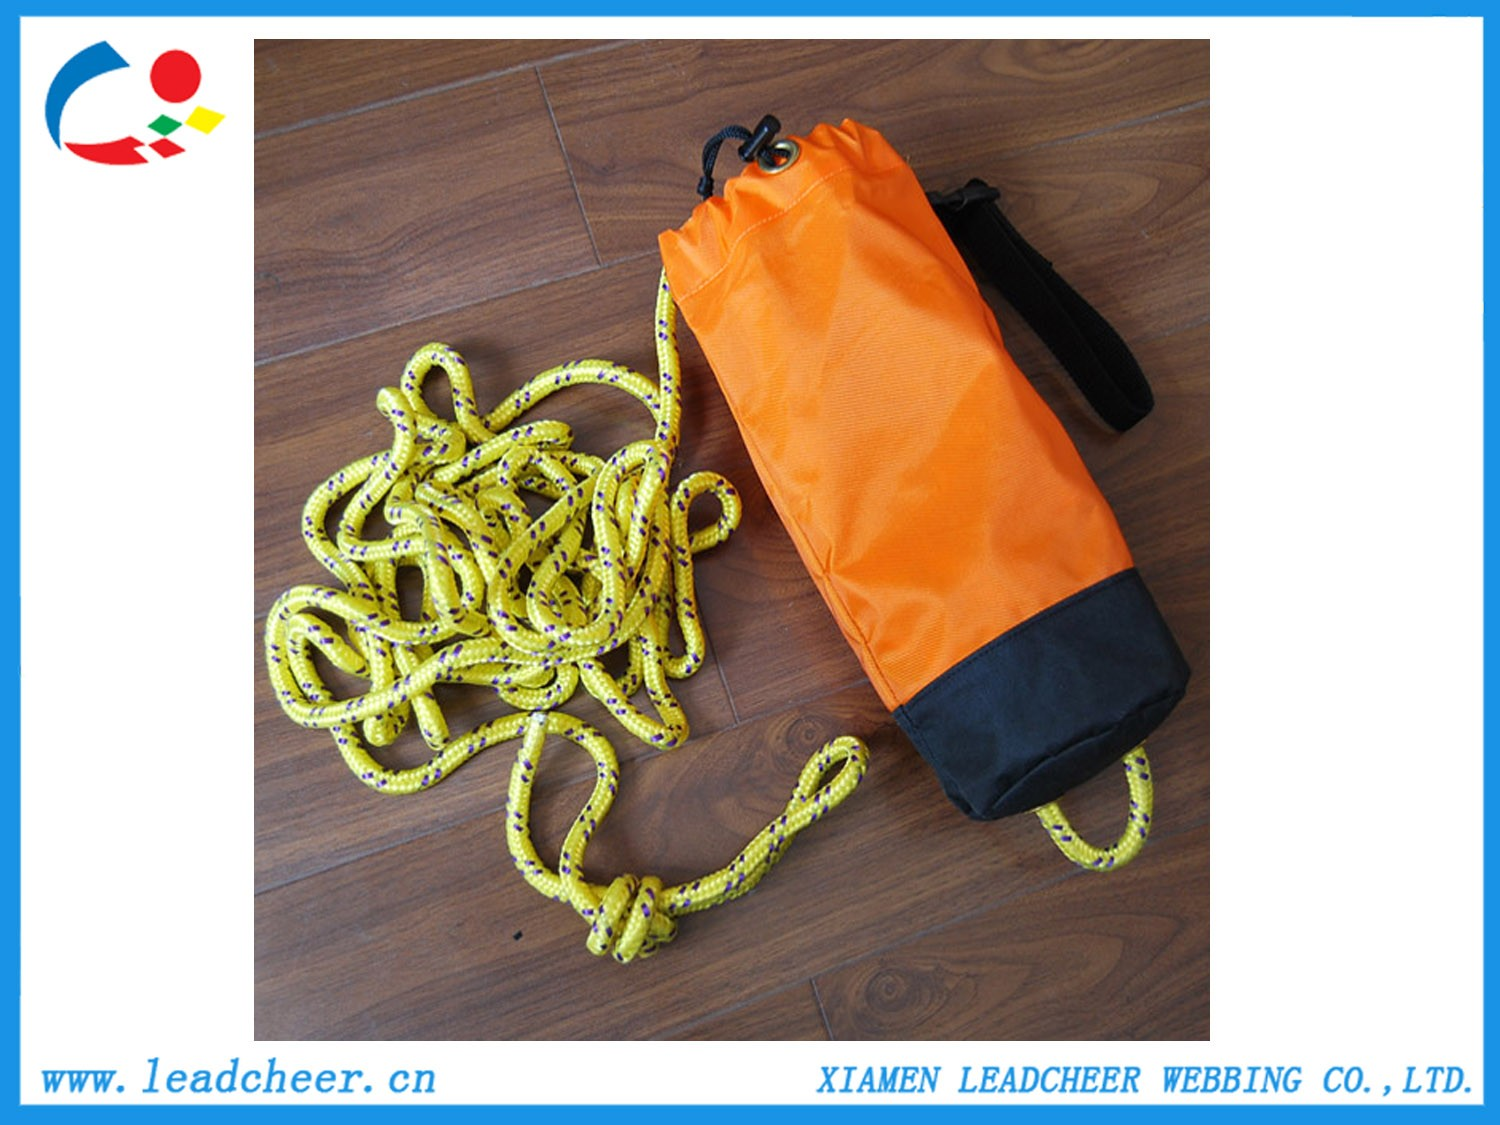 High quality Hot sale high tenacity reflective rope with throw bag for survival Quotes,China Hot sale high tenacity reflective rope with throw bag for survival Factory,Hot sale high tenacity reflective rope with throw bag for survival Purchasing